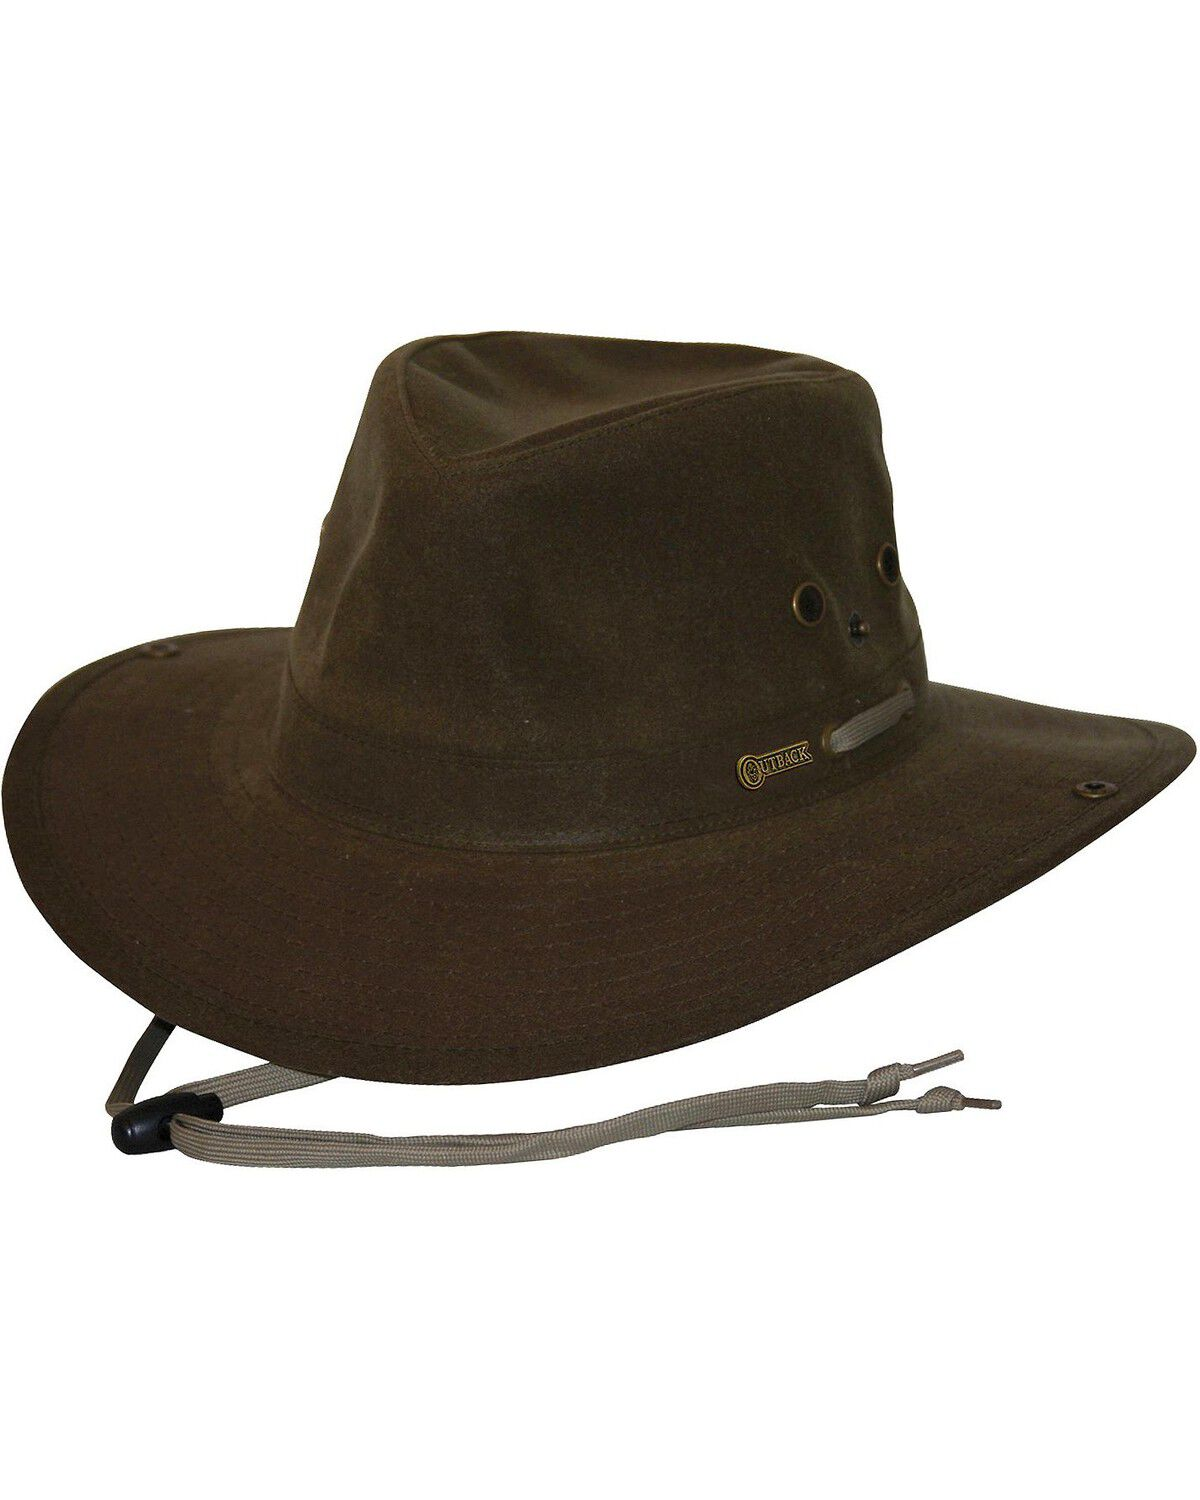 Outback Trading Company Canyonland Gold Dust Men/'s Cloth Hat UPF Fabric